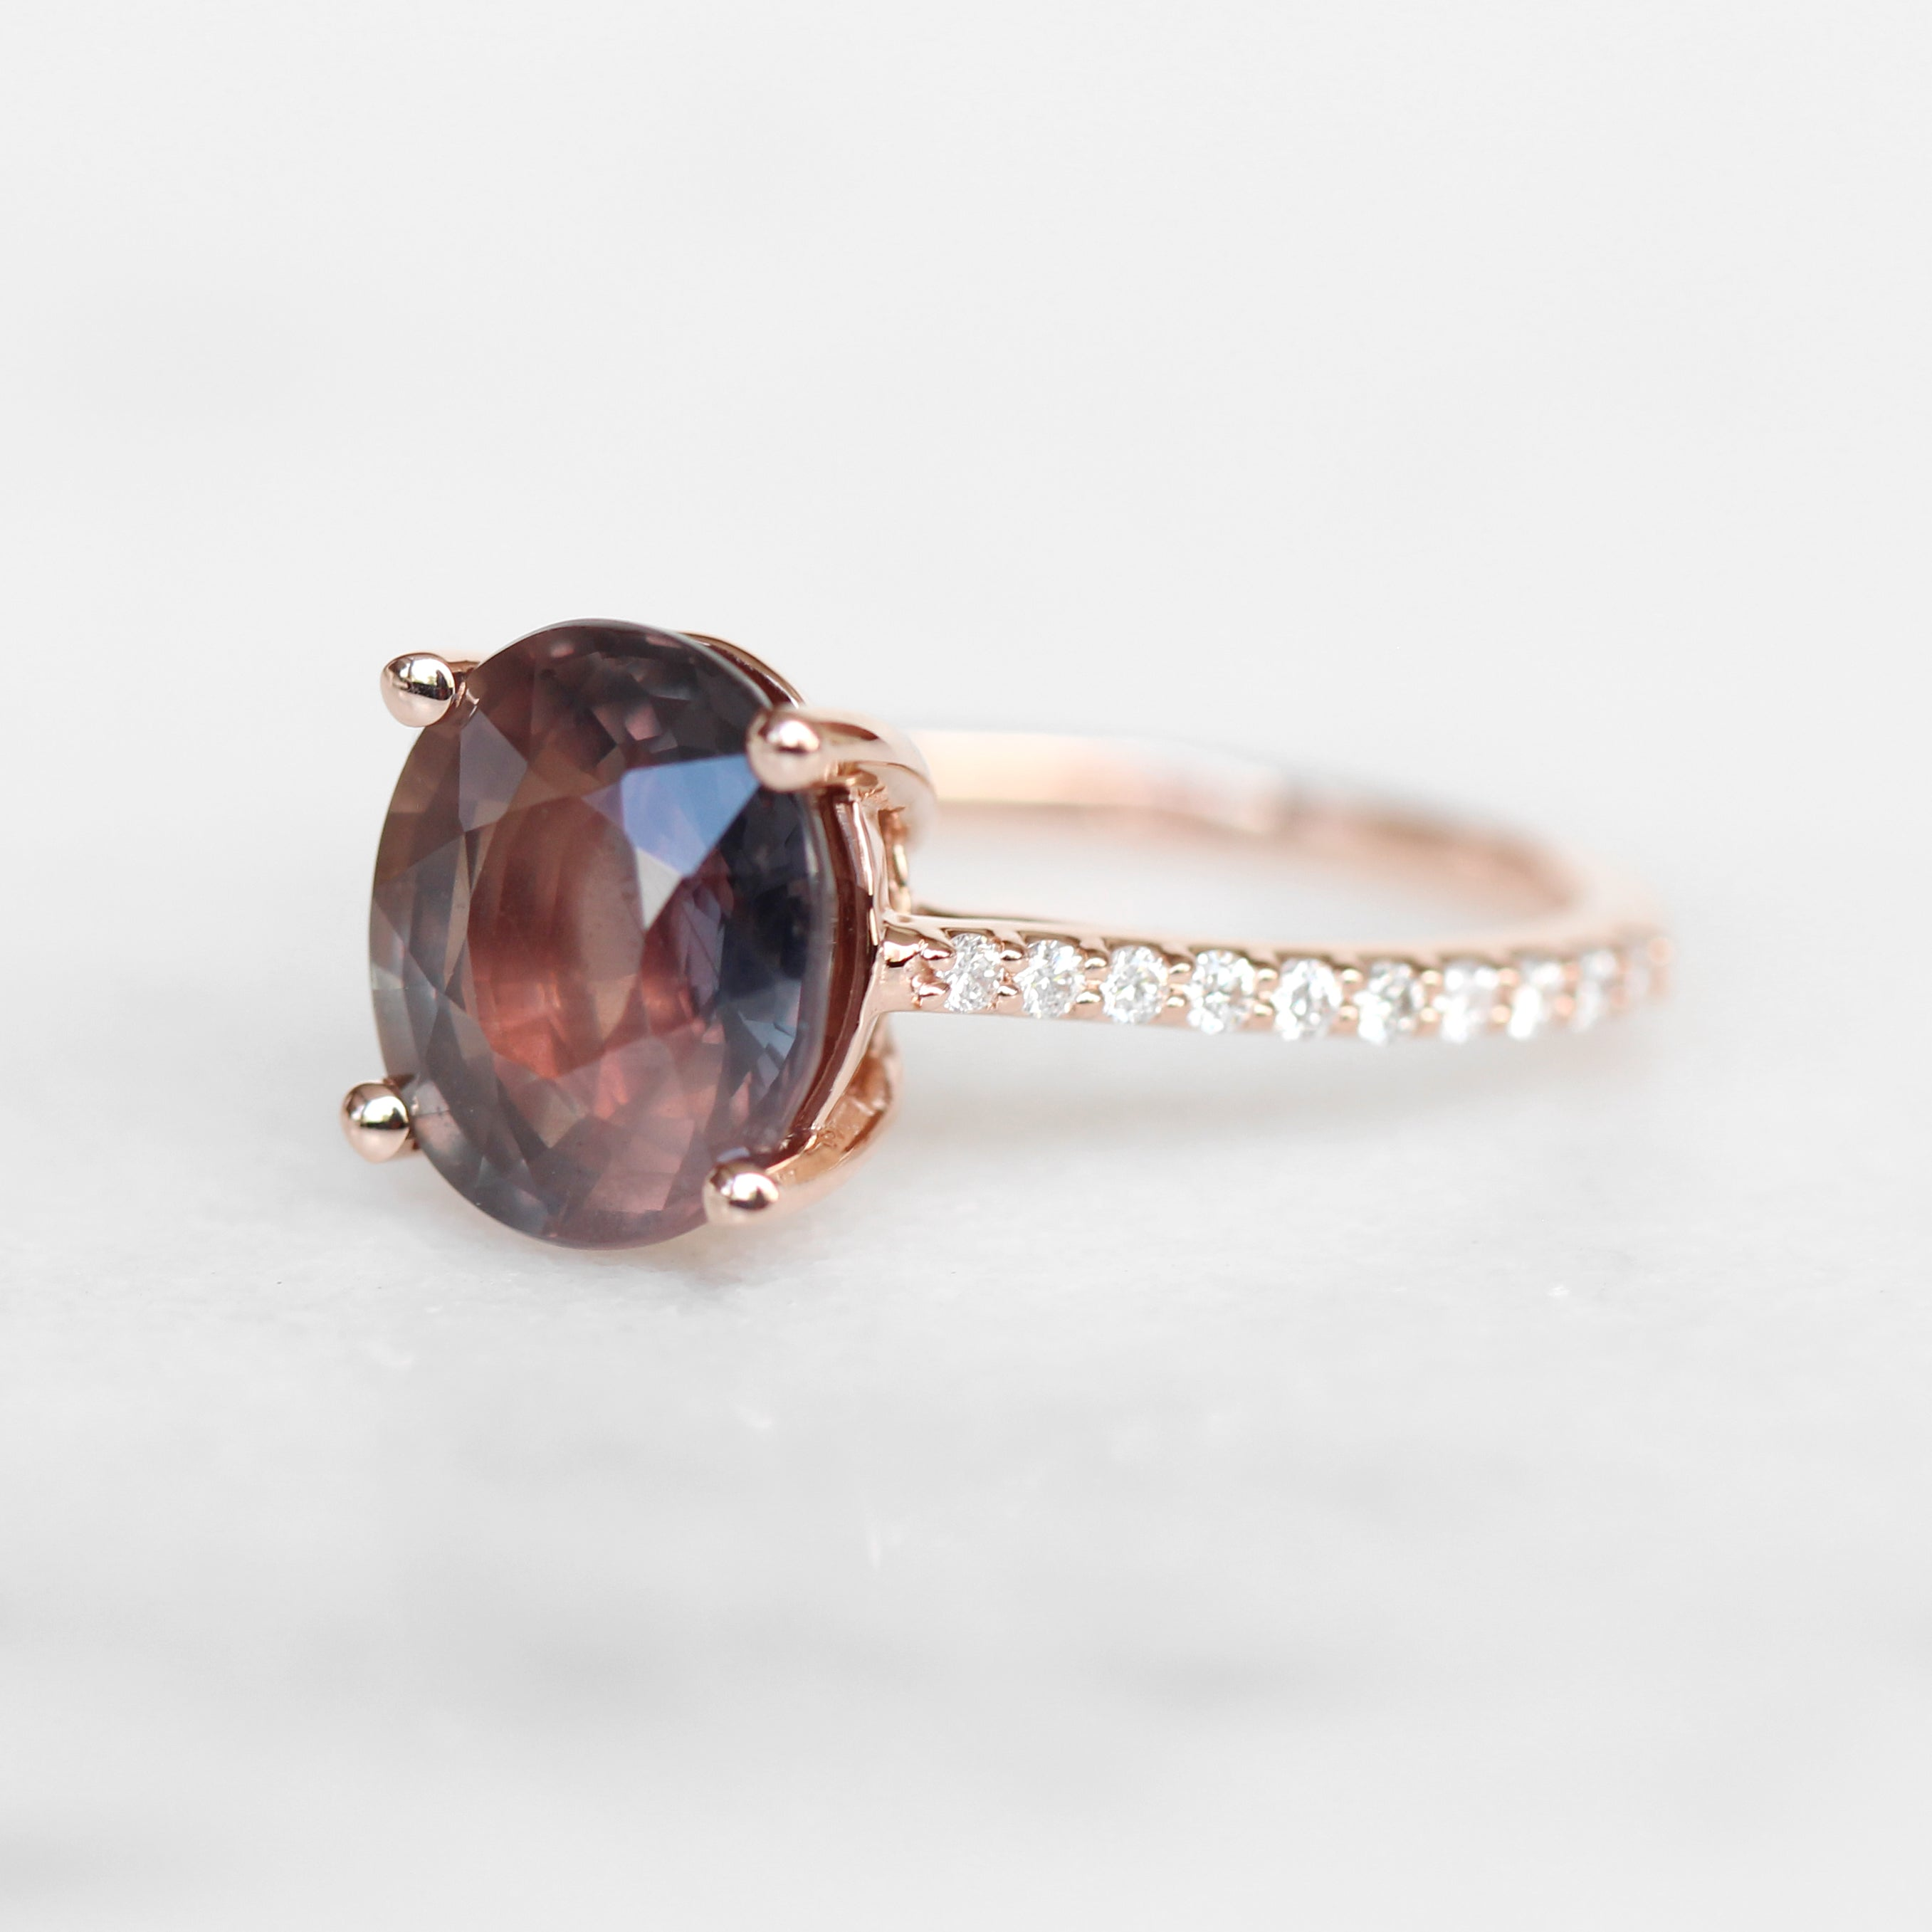 Raine ring with 4.35 carat oval color changing natural Sapphire and diamonds in 10k rose gold - ready to size and ship - Salt & Pepper Celestial Diamond Engagement Rings and Wedding Bands  by Midwinter Co.